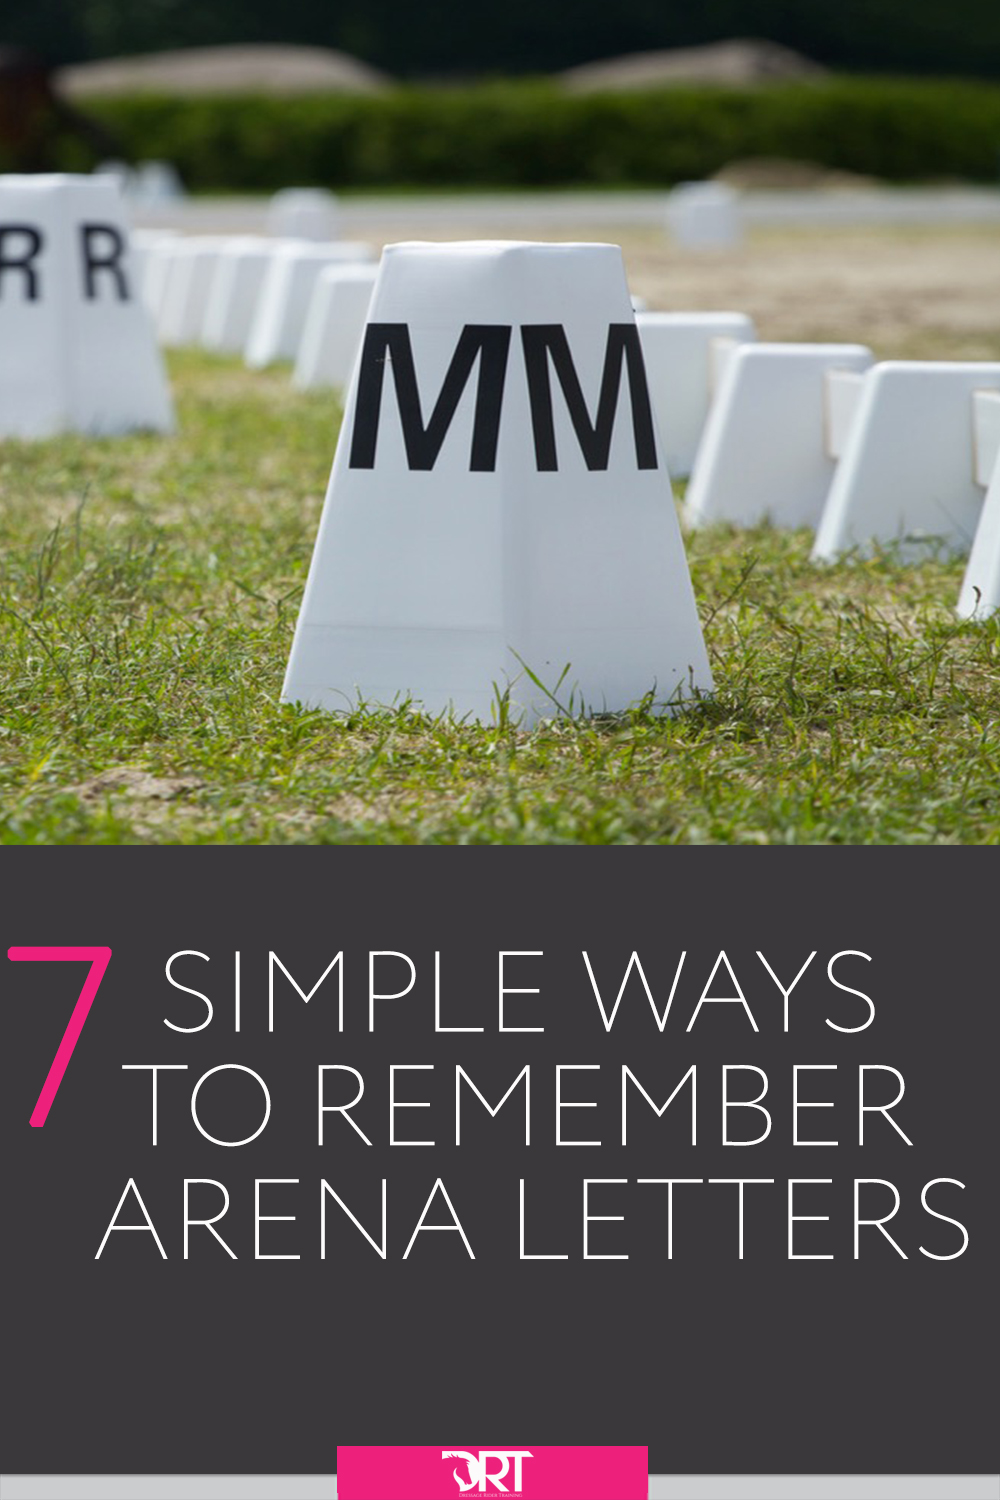 Here I share some simple ways to help you remember the dressage arena letters and markers plus the proper layout of the dressage arena.  #dressage #dressagearena #dressagearenasetup #dressagearenalayout